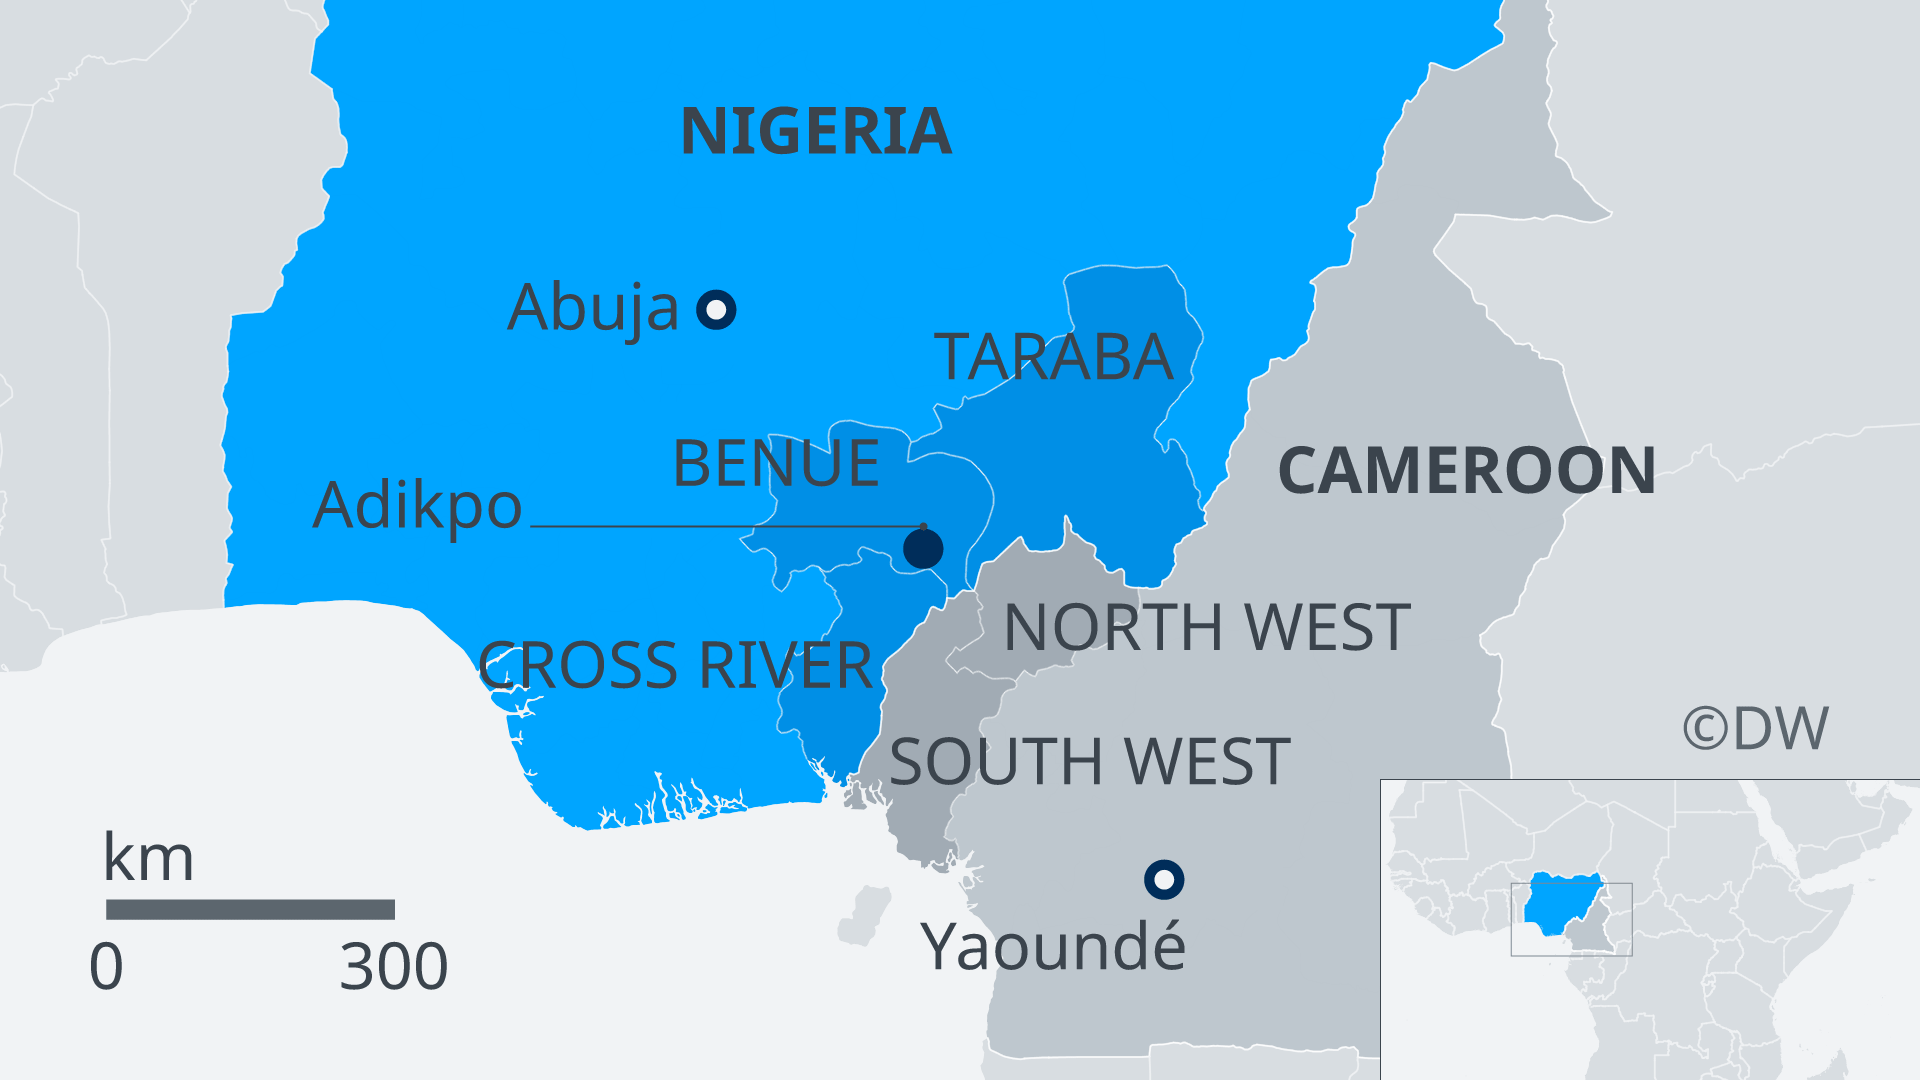 A map showing Nigeria and neigboring Cameroon